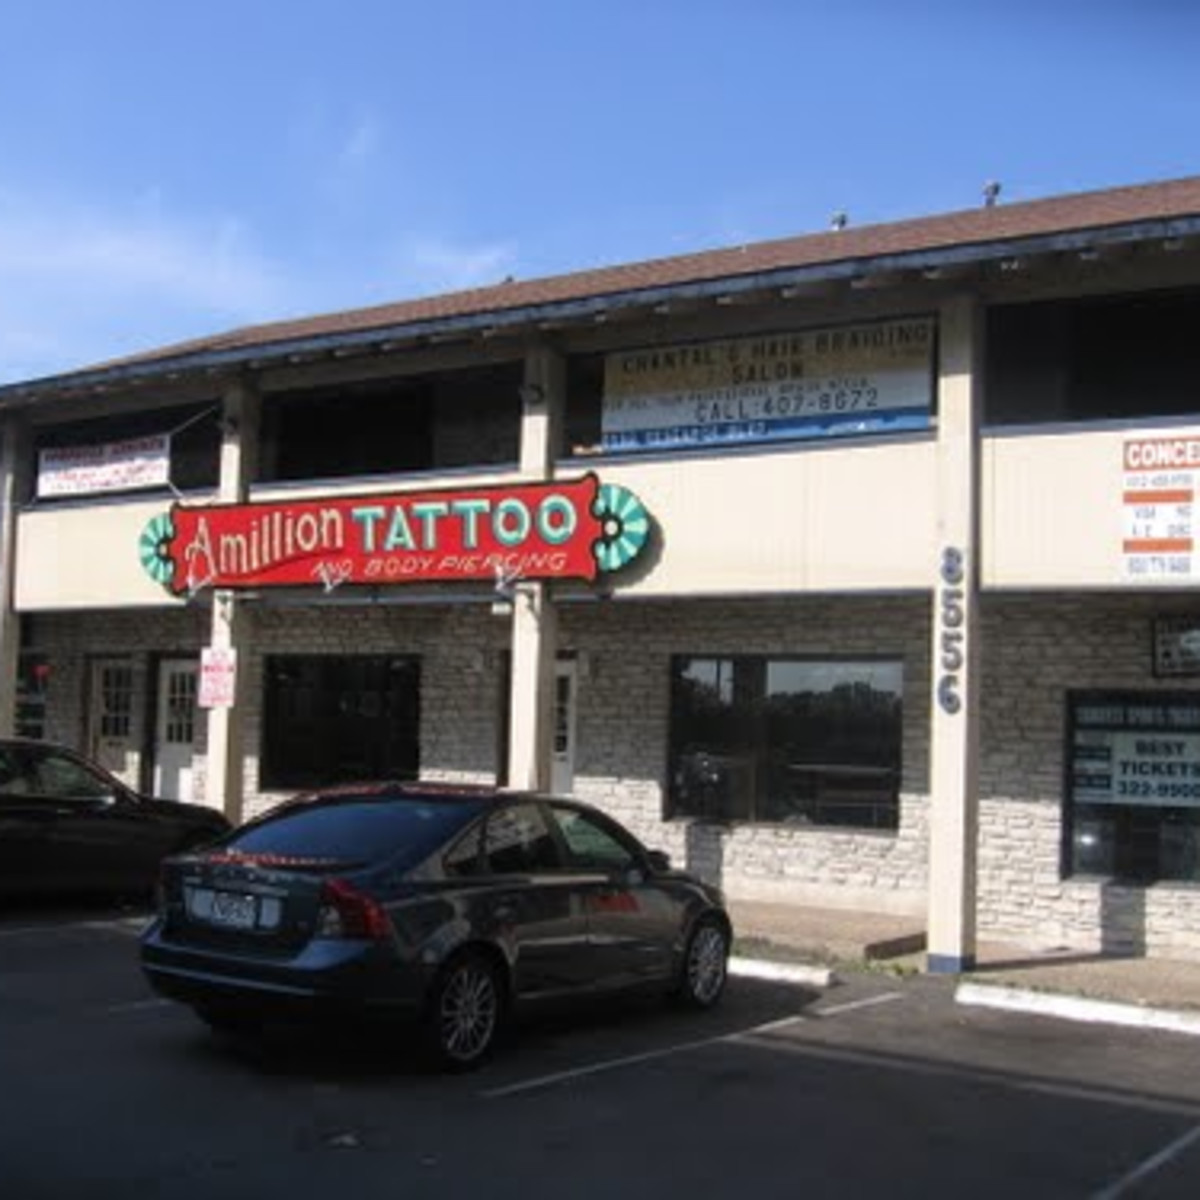 Austin_photo: places_shopping_amillion tattoo_exterior